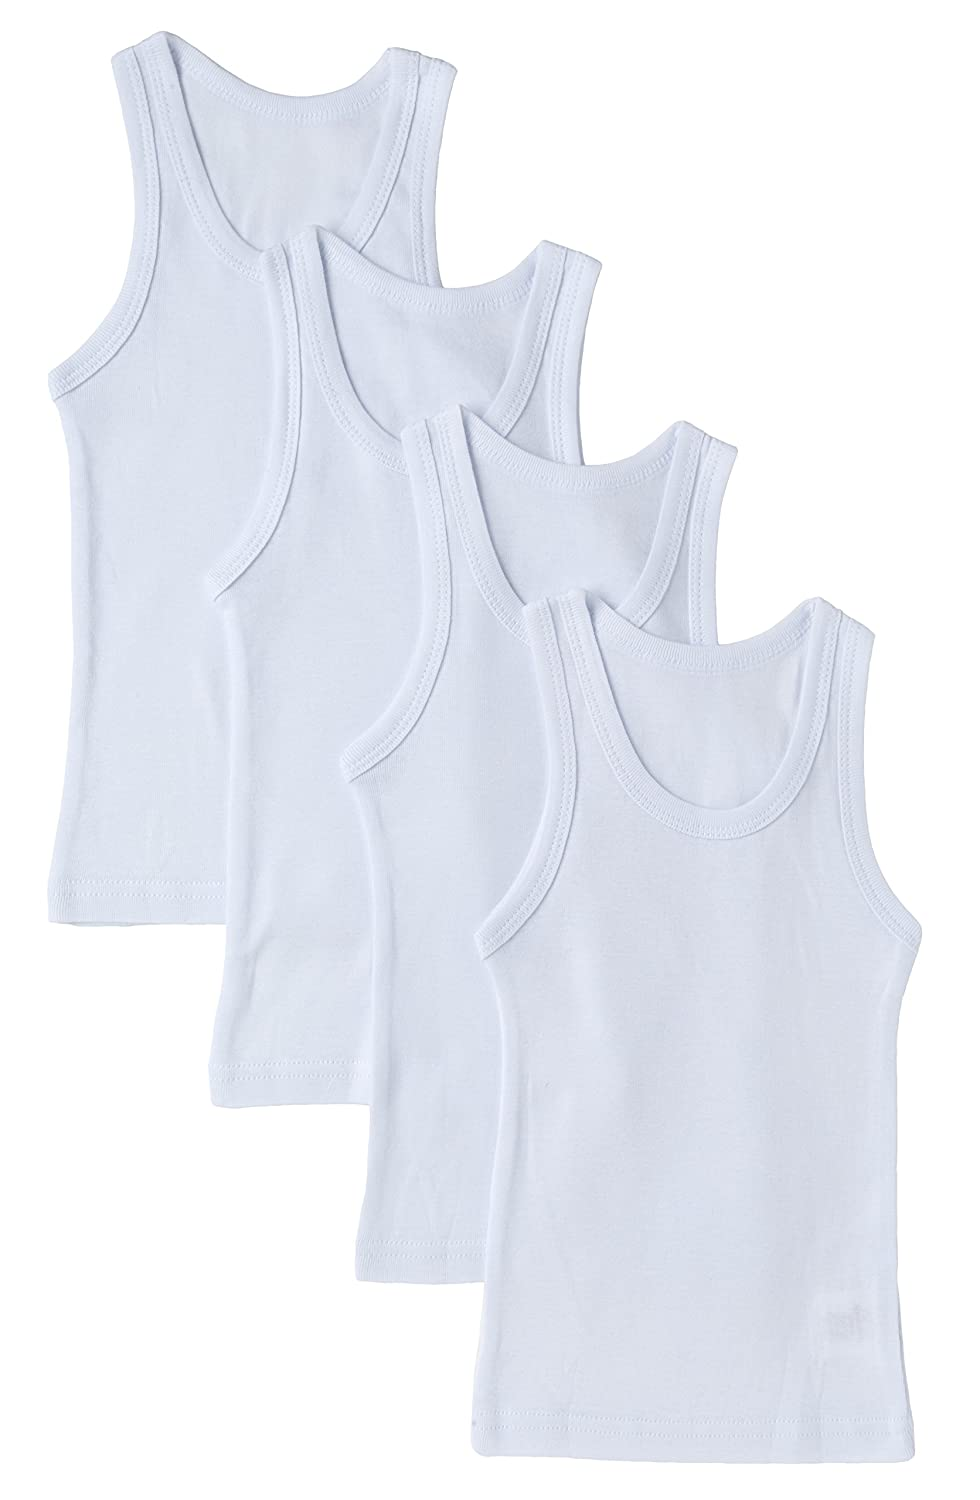 Sportoli Boys Ultra Soft 100% Cotton White Tank Top Undershirts